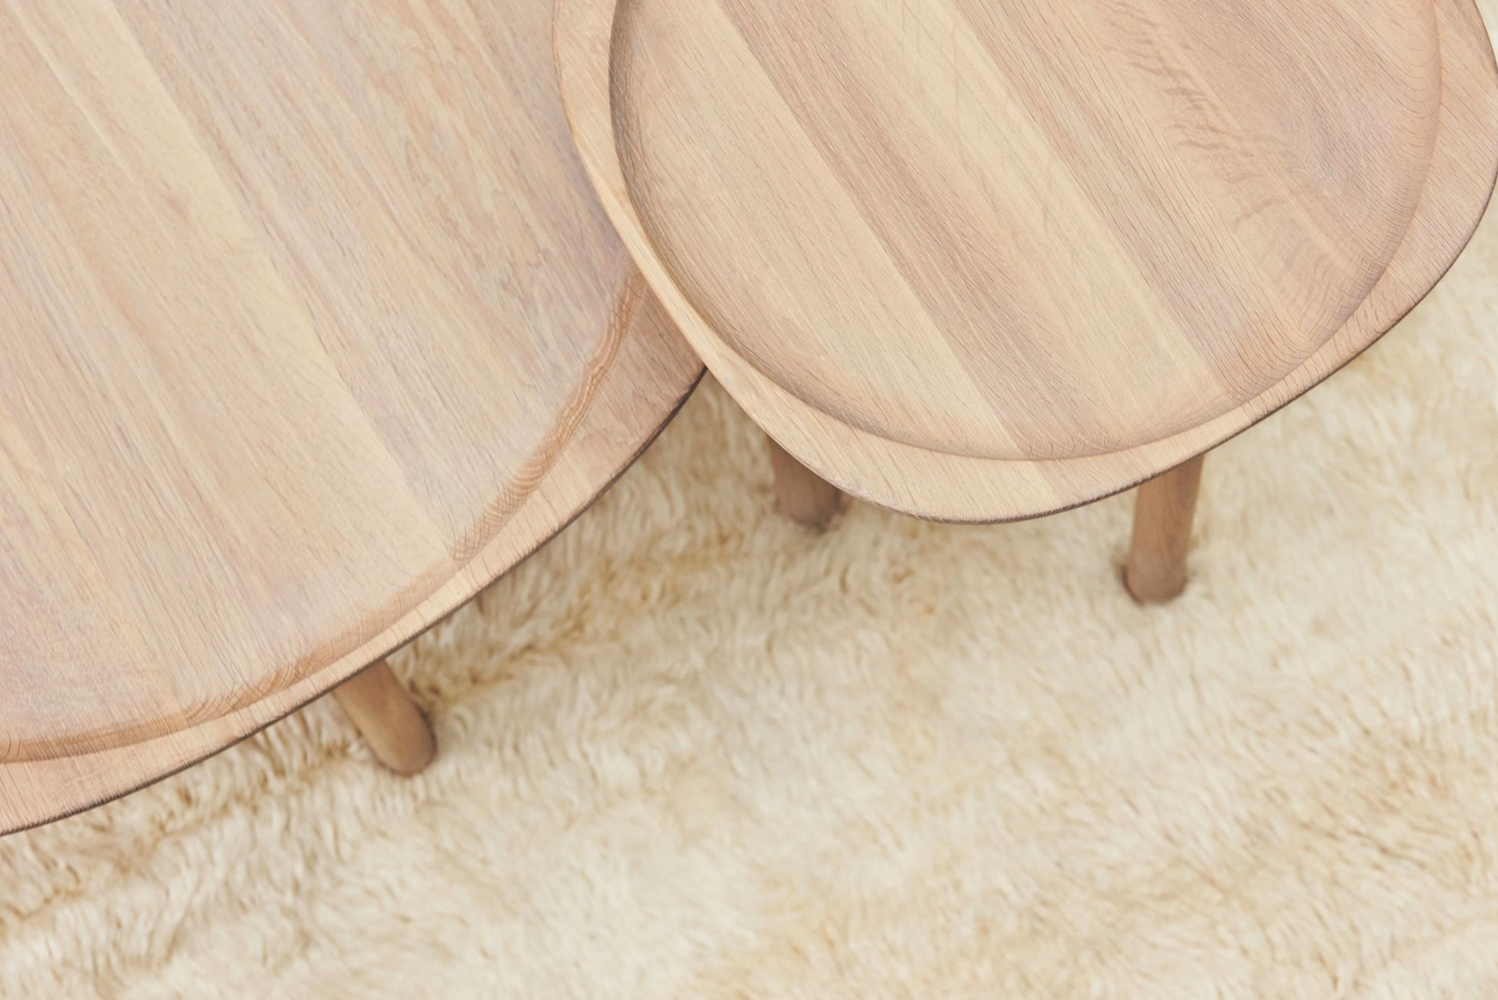 The coffee table is available in two sizes that can be paired together or separately.